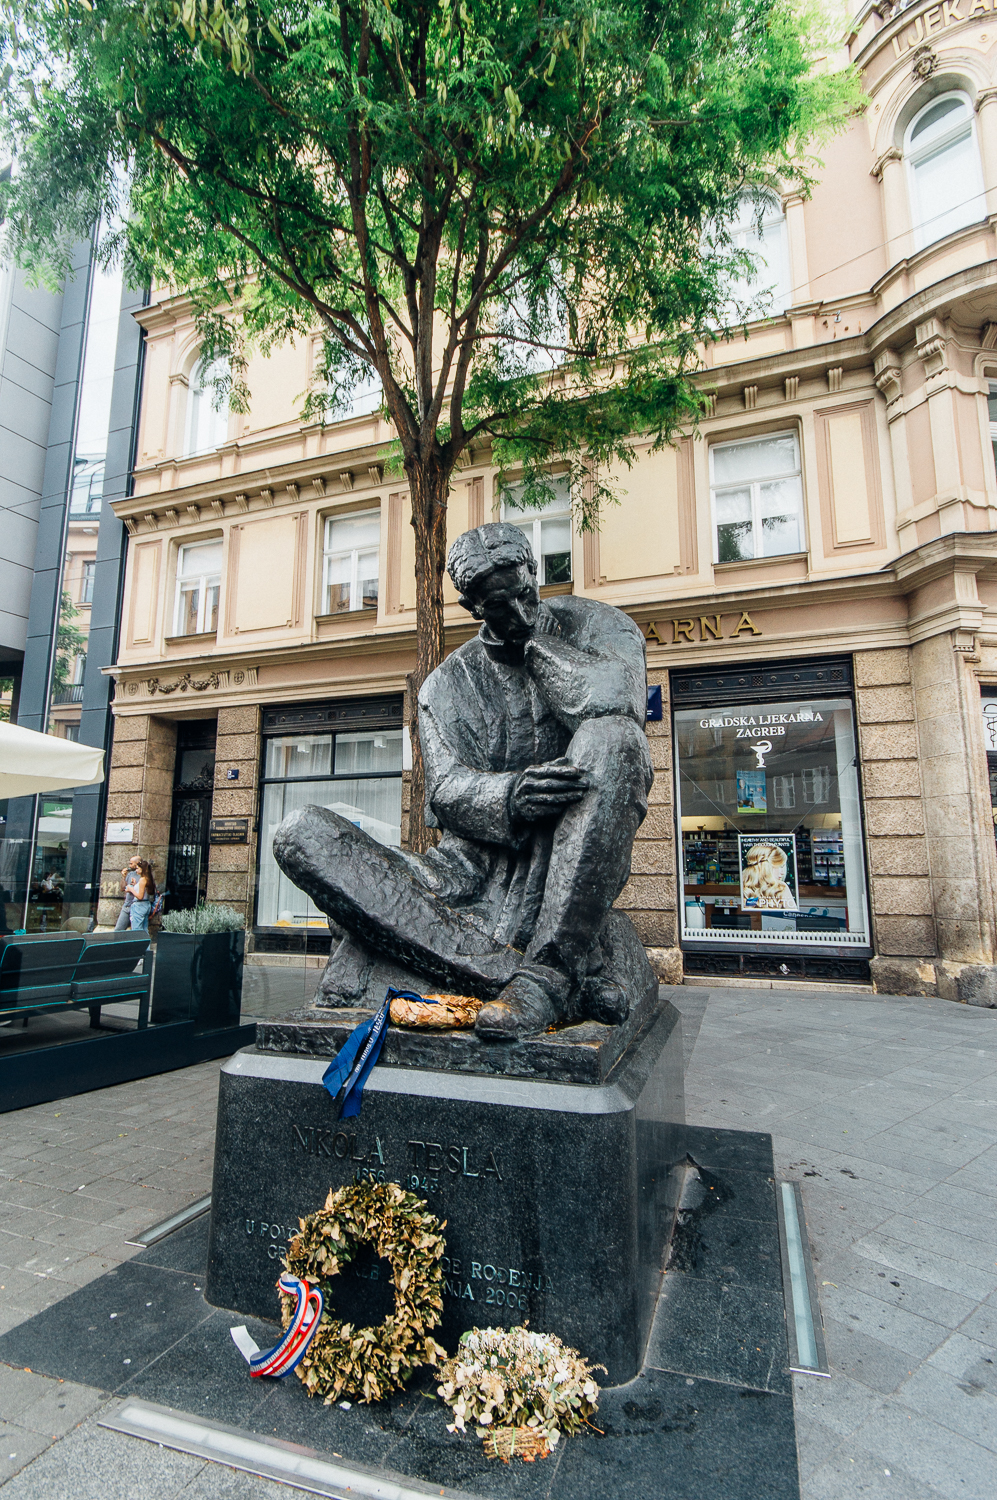 Nikola Tesla makes Croatia proud for his inventions, discoveries, and pure intelligence.